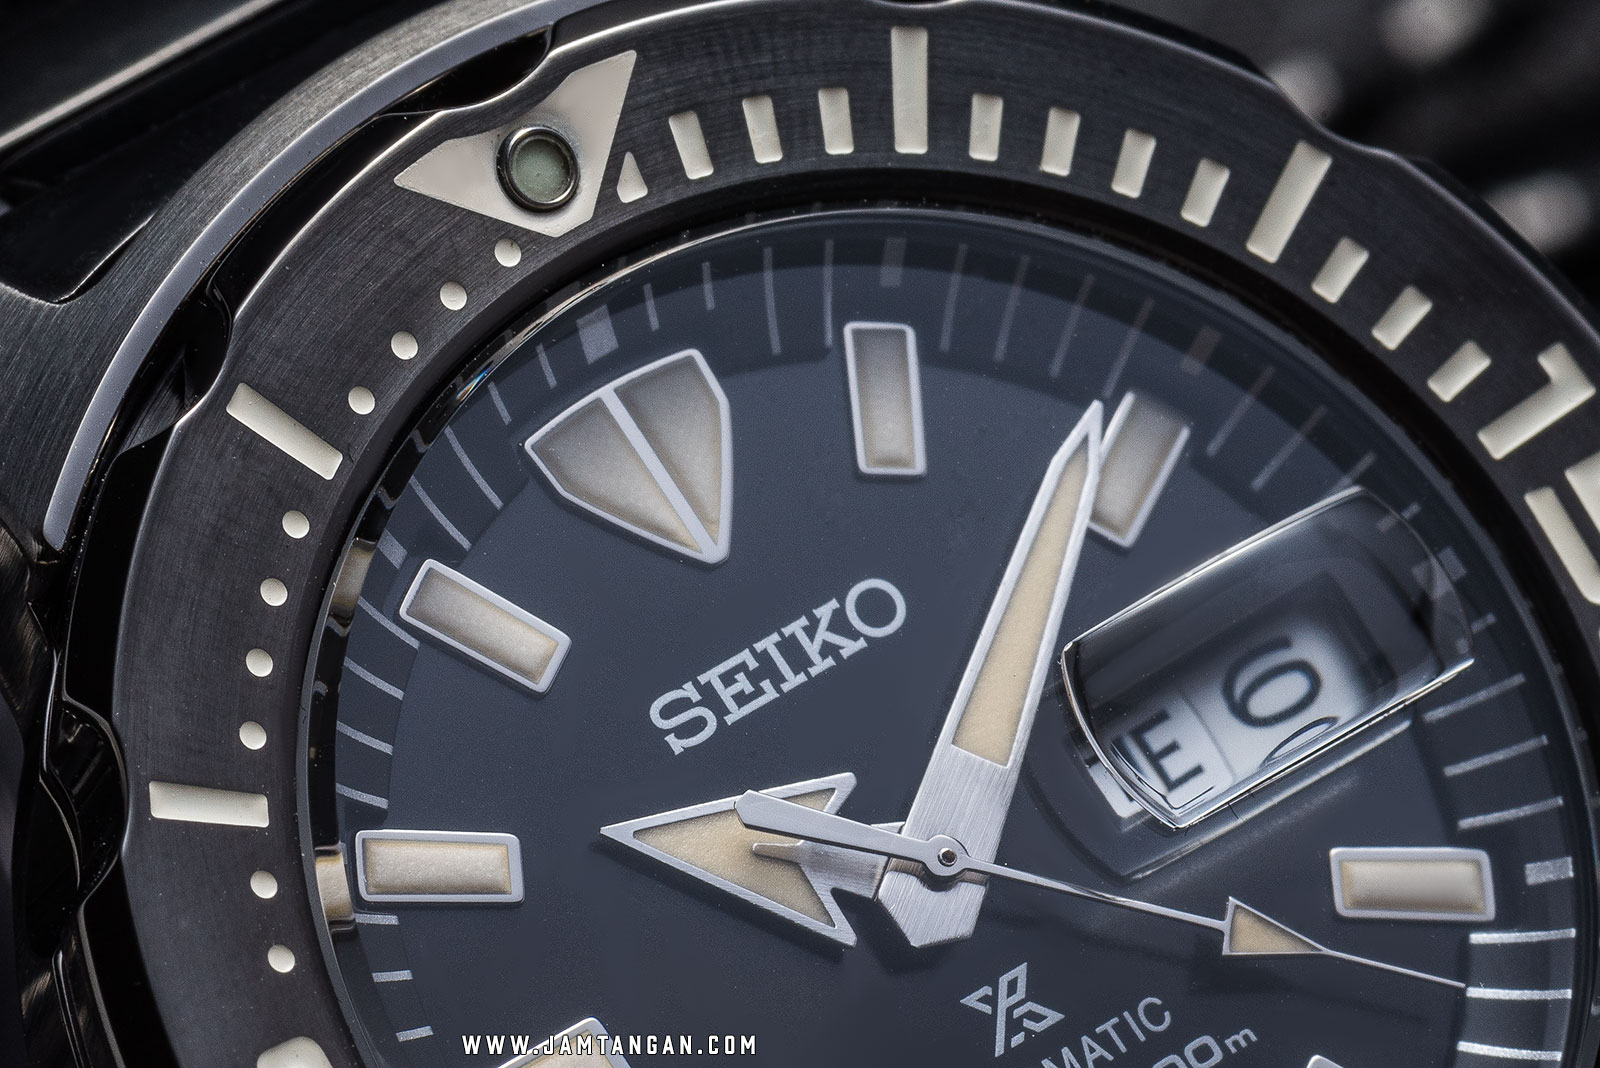 Seiko Prospex SRPD29K1 Monsters Automatic 200M Black Stainless Steel [EXCLUSIVE AT JAMTANGAN.COM] Machtwatch